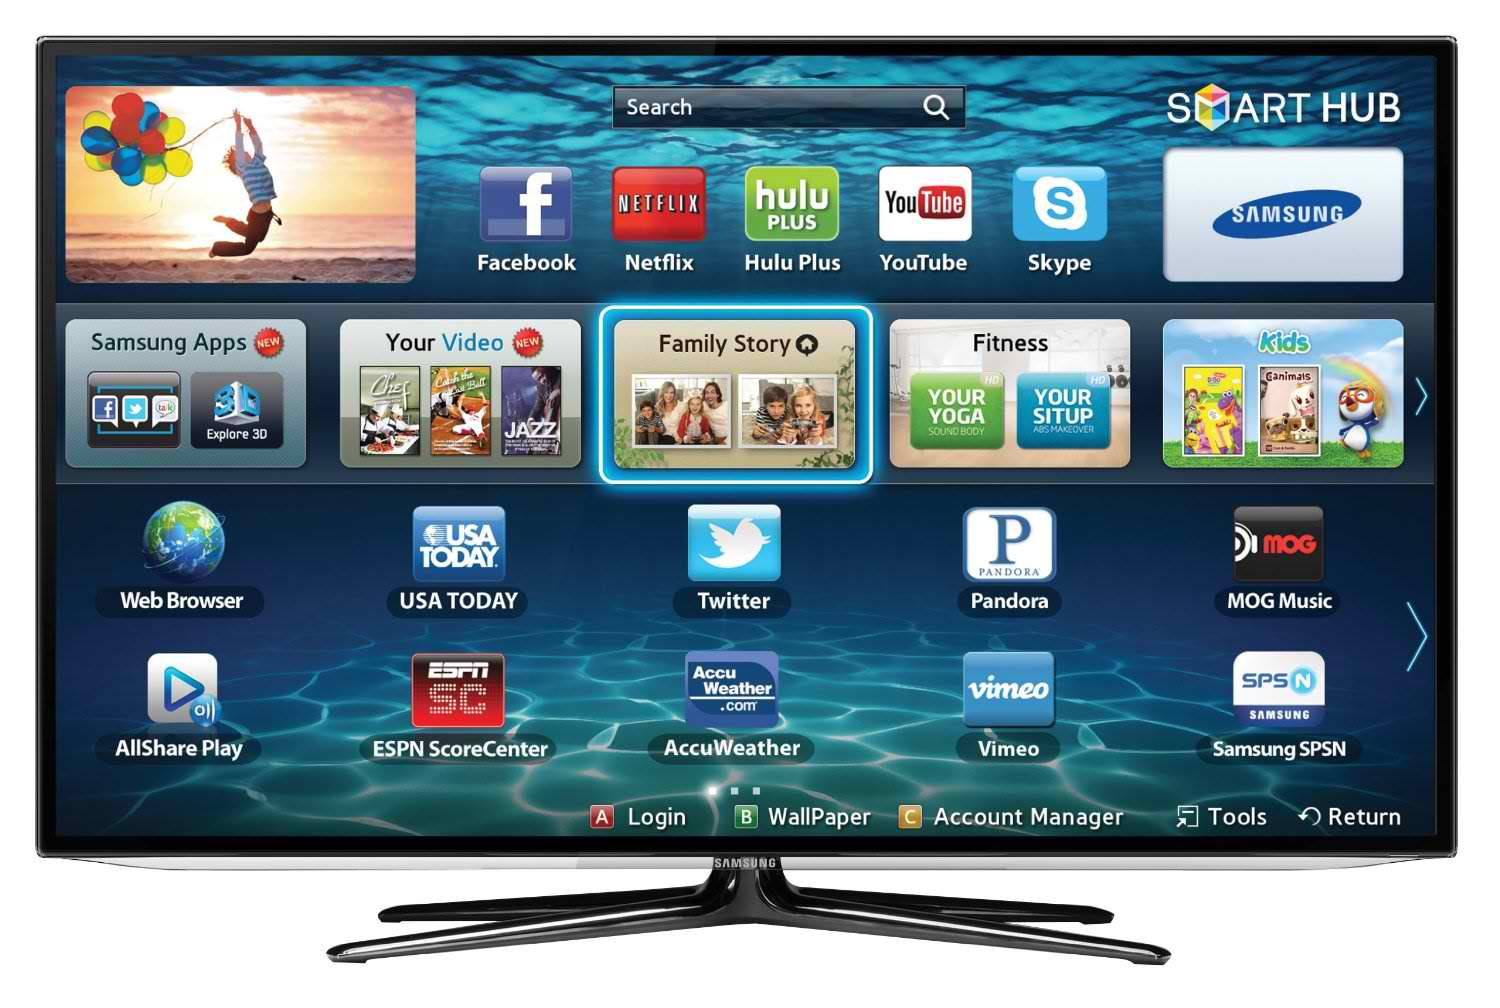 Samsung Smart Led Tv : Samsung Smart TV Price Drops: Samsung 46″ 3D Slim LED HDTV $897 ...